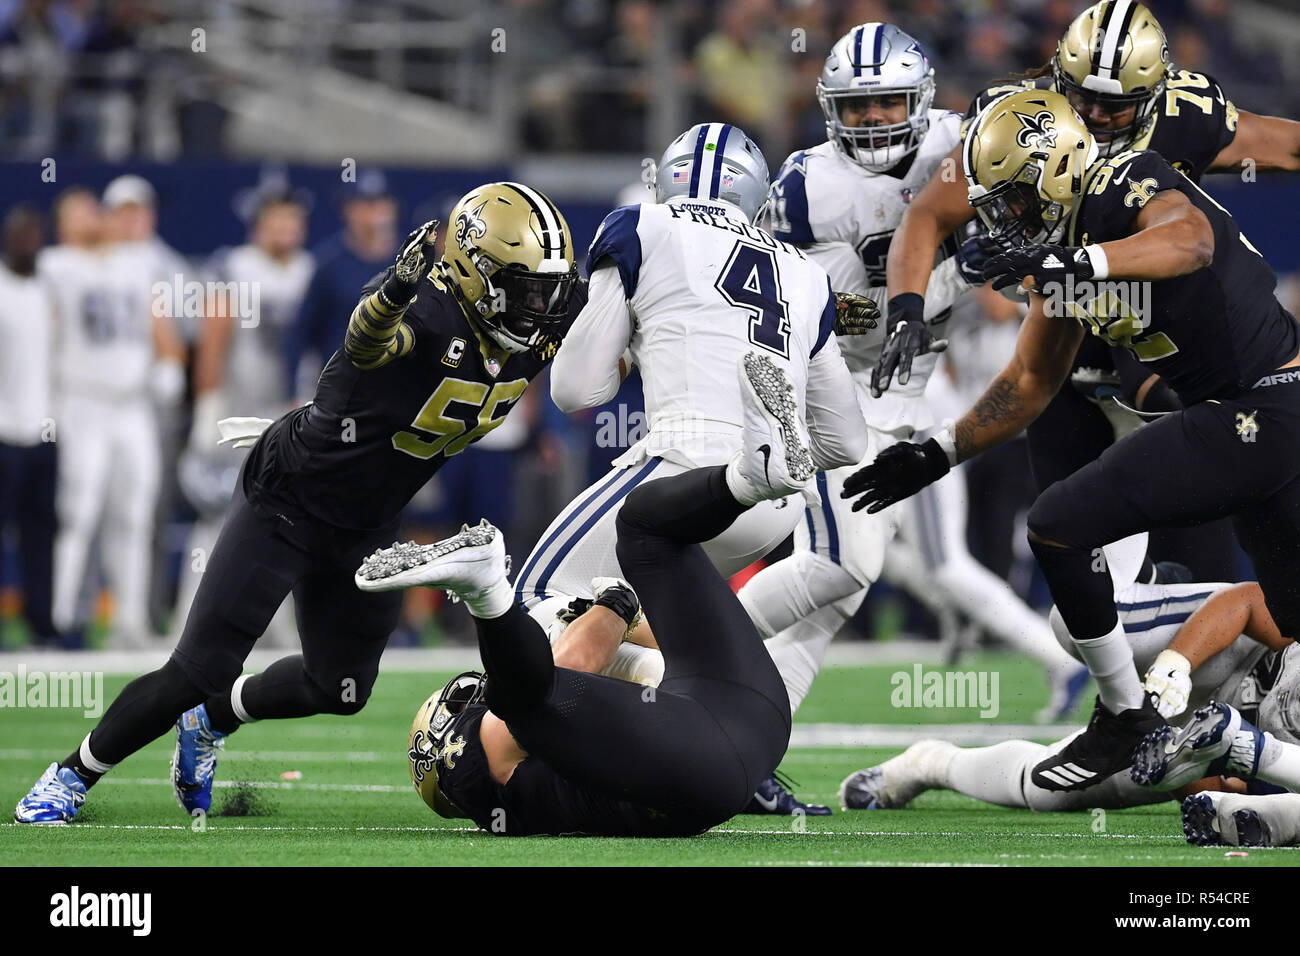 d1e777bf93c Arlington, Texas, USA. 29th Nov, 2018. Dallas Cowboys quarterback ...